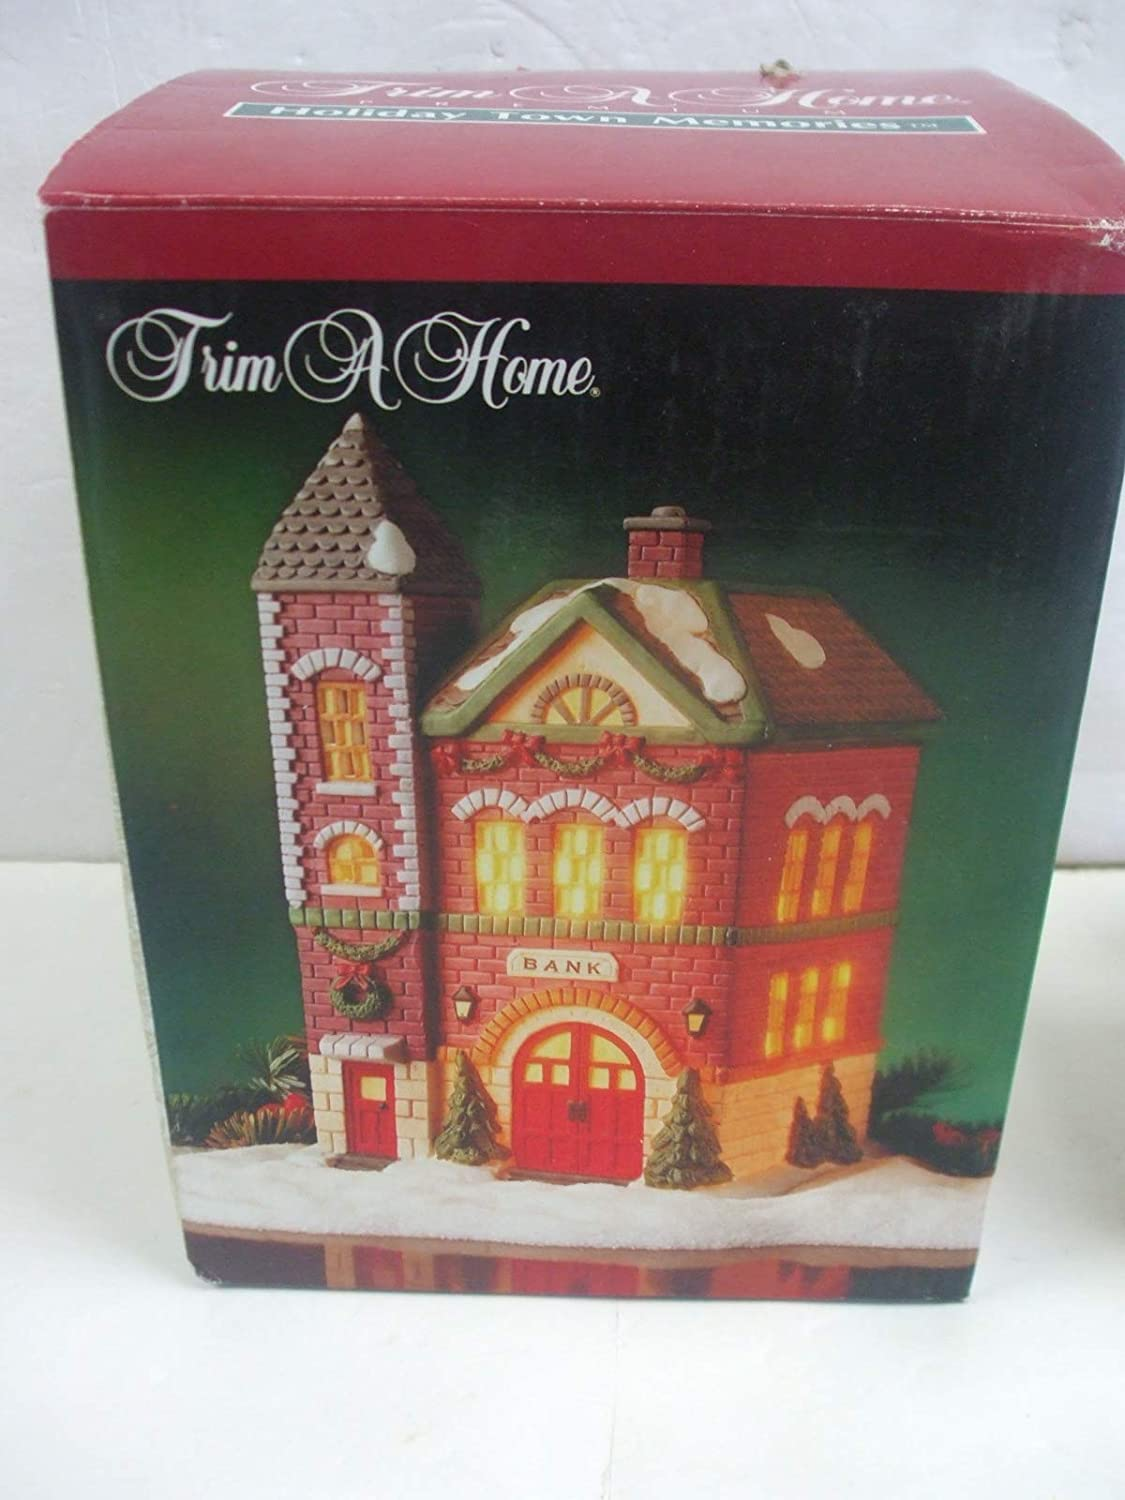 Trim A Home Holiday Town Memories - Bank Building Hand Painted Porcelain Lighted House